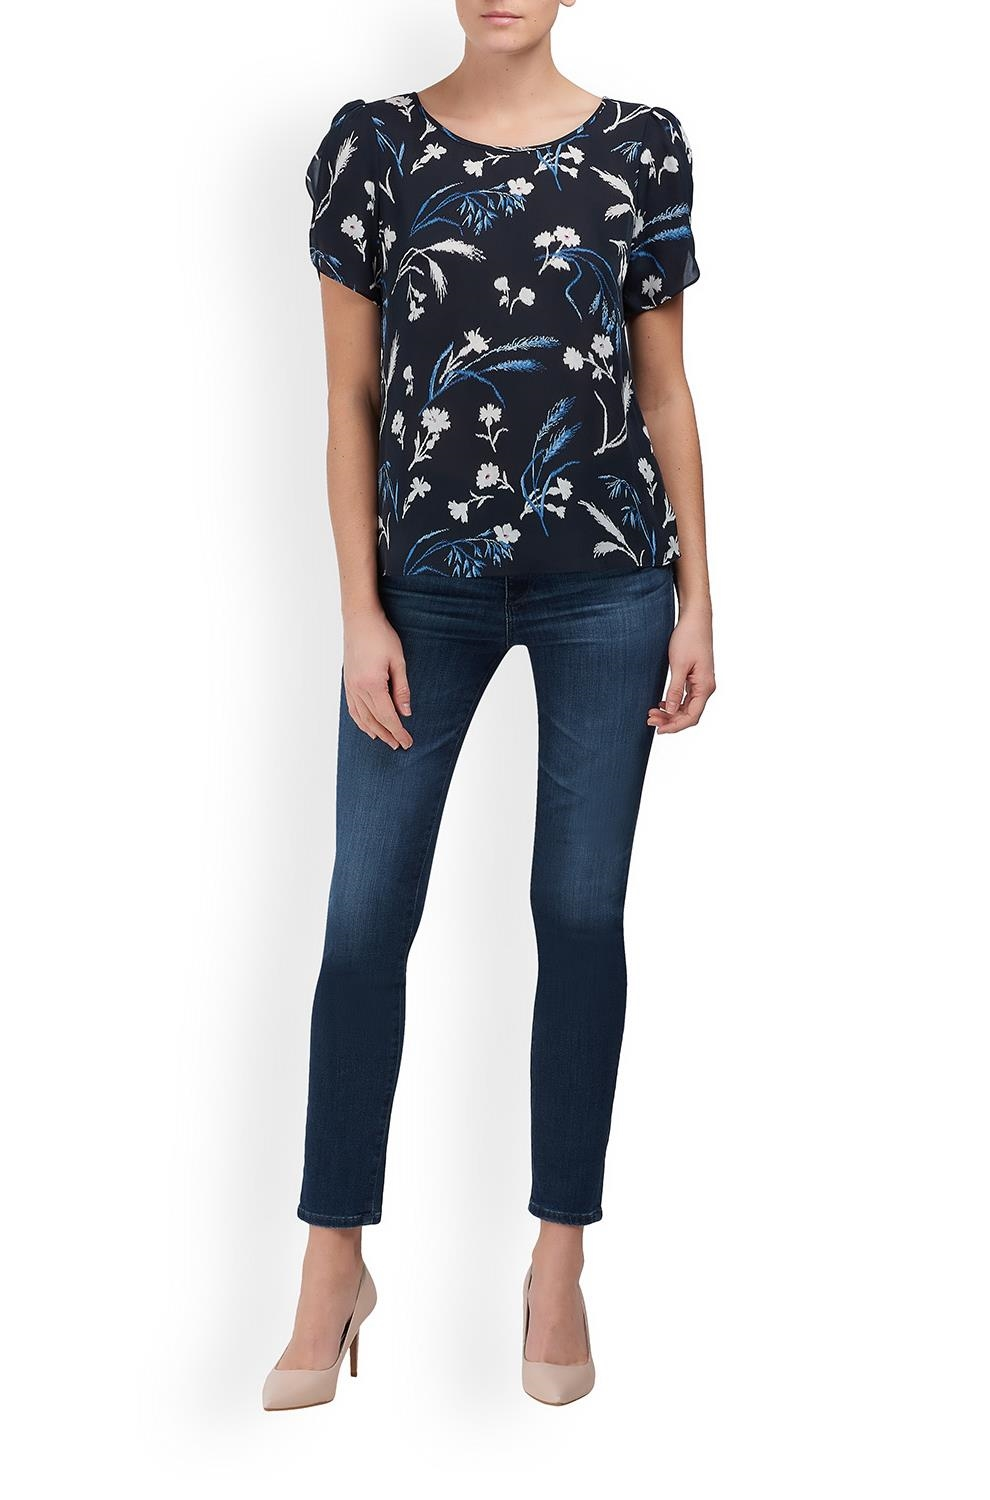 aa85a4fc2b6f33 Joie. Wira Floral Print Top in Midnight. Was£195.00Now£75.00. 1 / 4